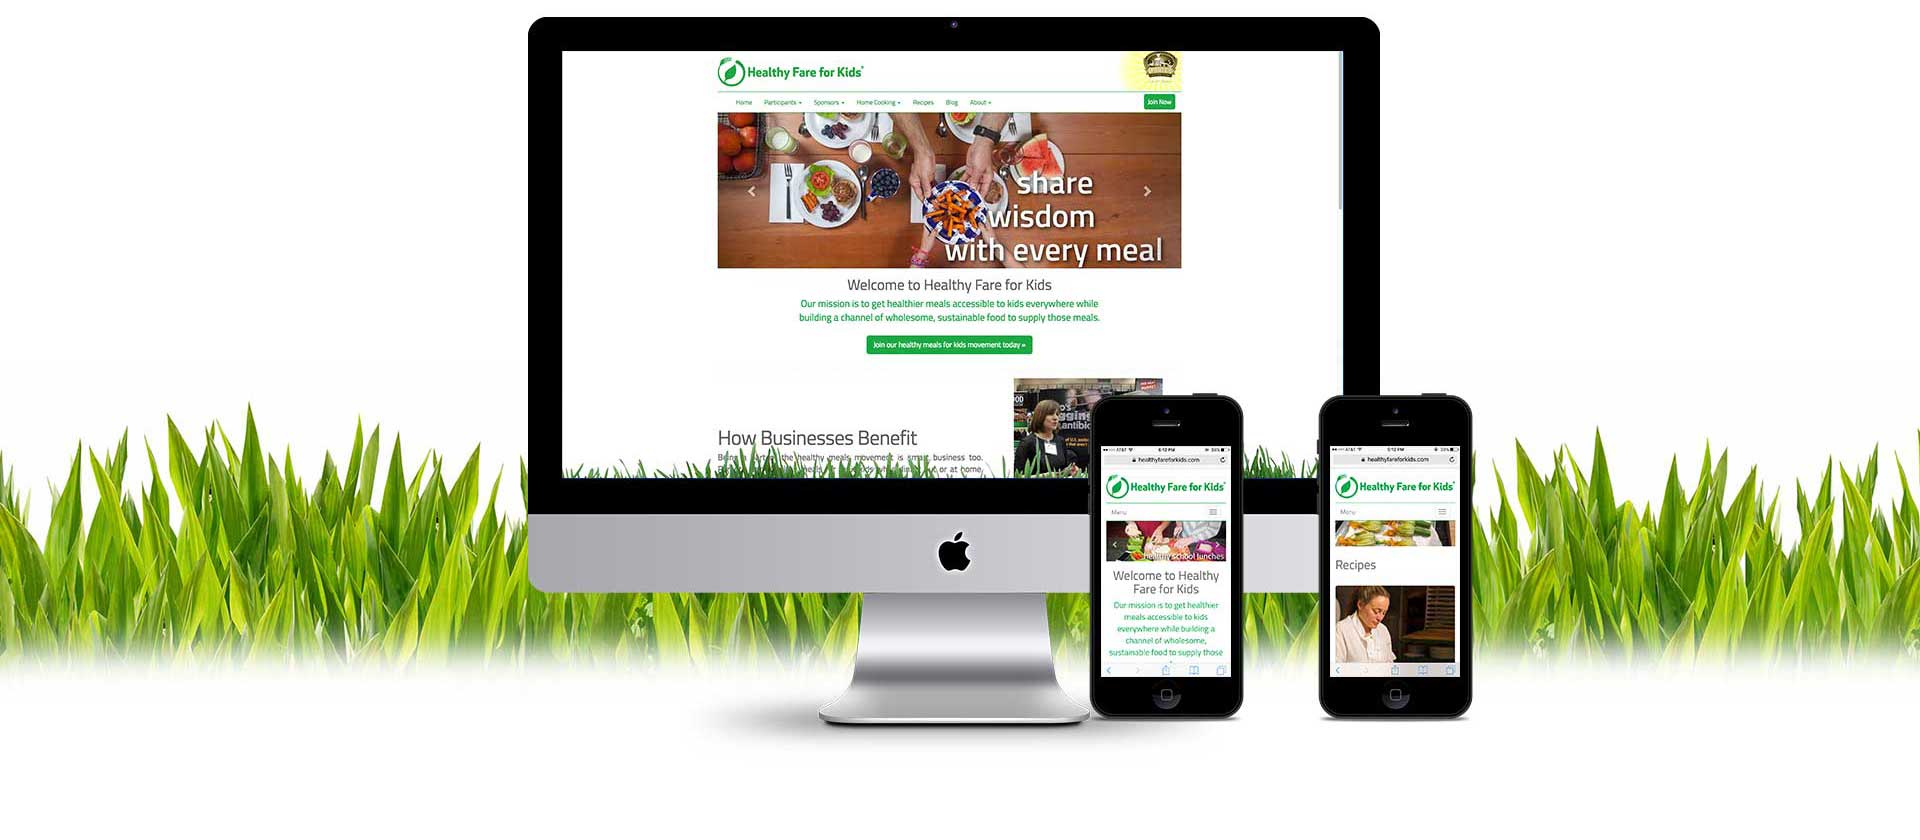 Healthy Fare for Kids website graphic user interface